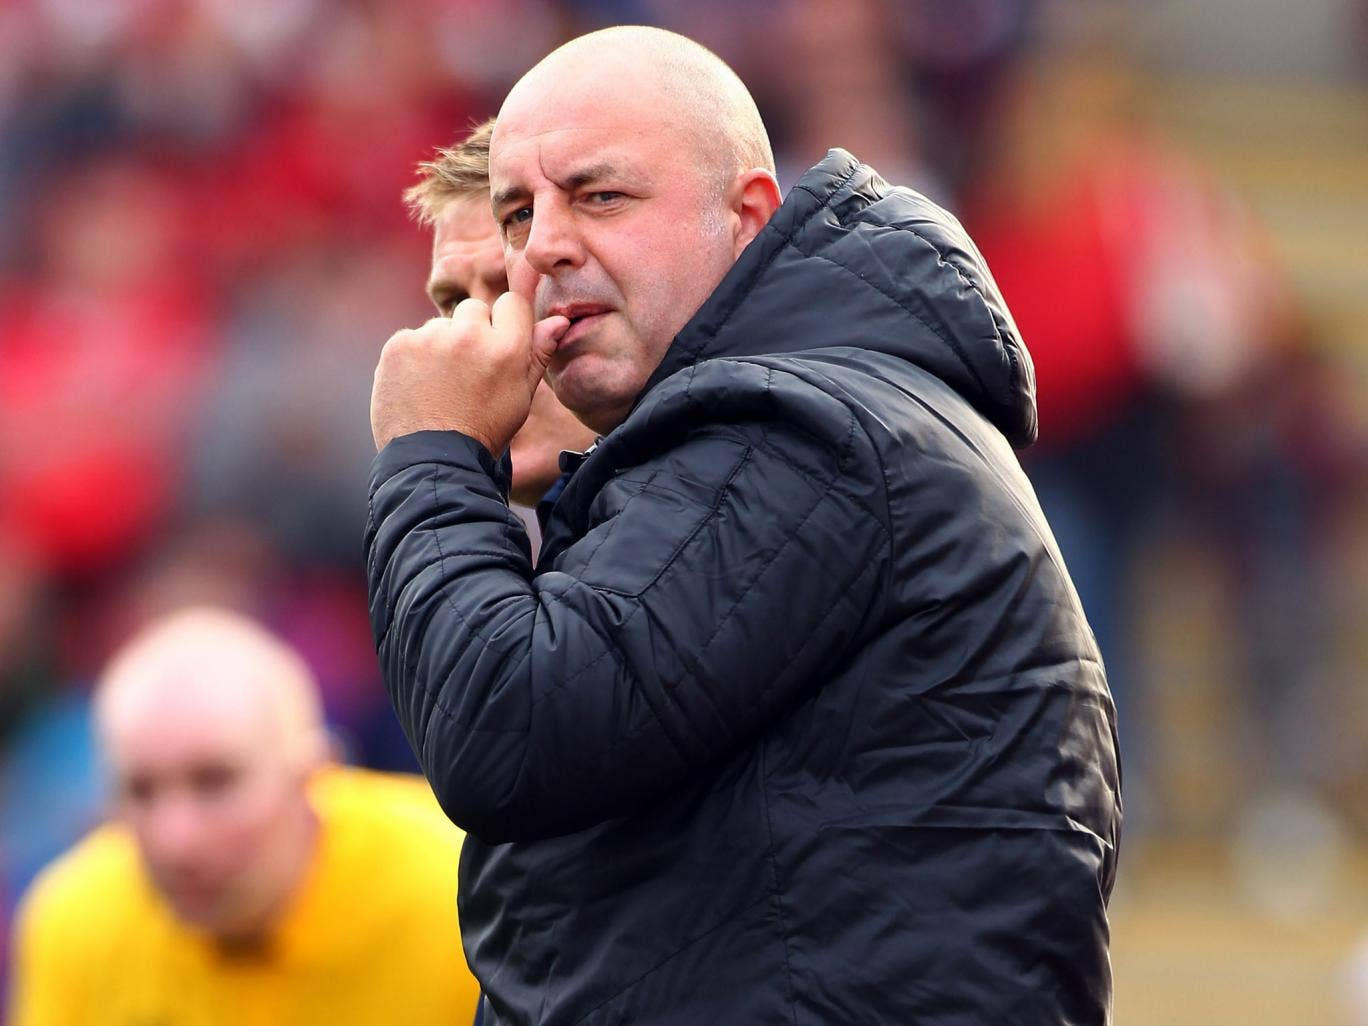 Yorkshire peaked: Keith Hill, removed from Tykes's team